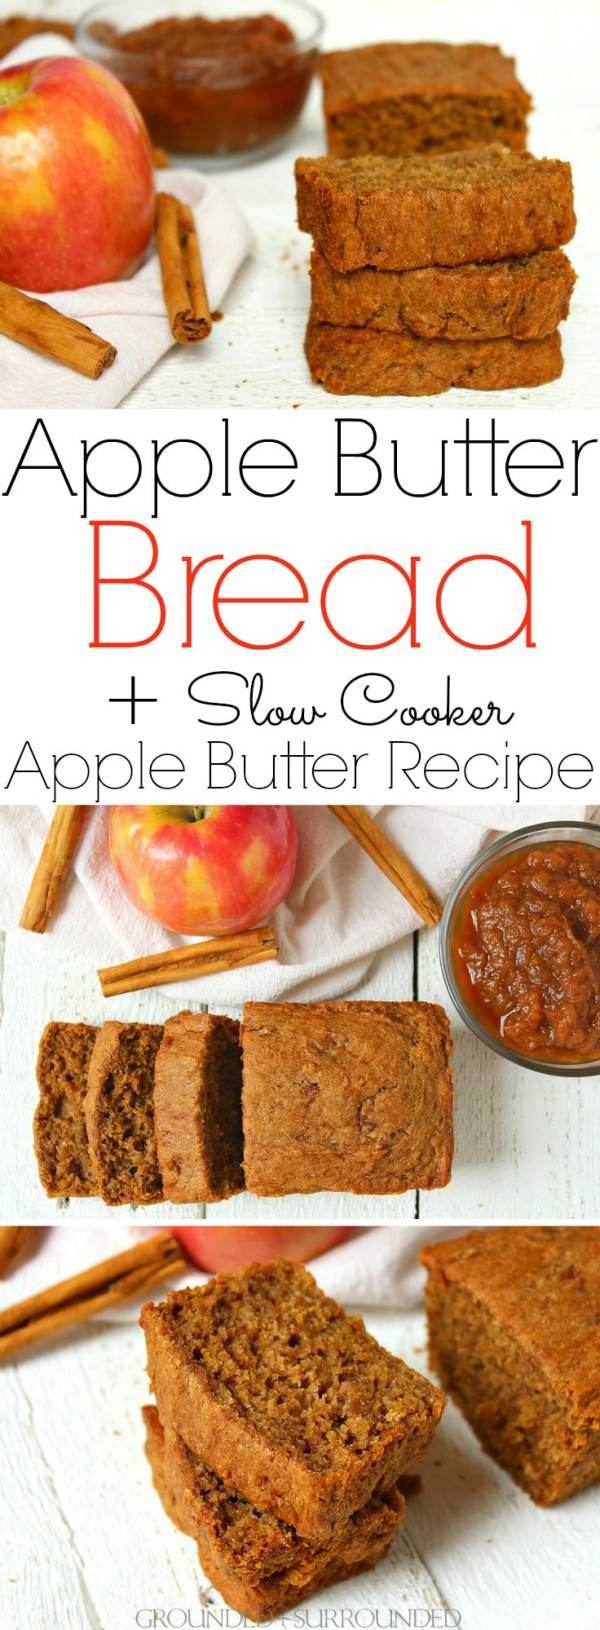 The BEST Apple Butter Bread + Slow Cooker Apple Butter Recipe   This gluten-free sweet bread is our favorite fall breakfast recipe! If you are looking for an easy sweet bread recipe to make the most of autumn flavors make this healthy crock pot apple butter AND then bake this bread! Baking when the weather turns crisp is my favorite activity. This batter makes a wonderful muffin to pack in school lunches and to freeze for those busy mornings too!